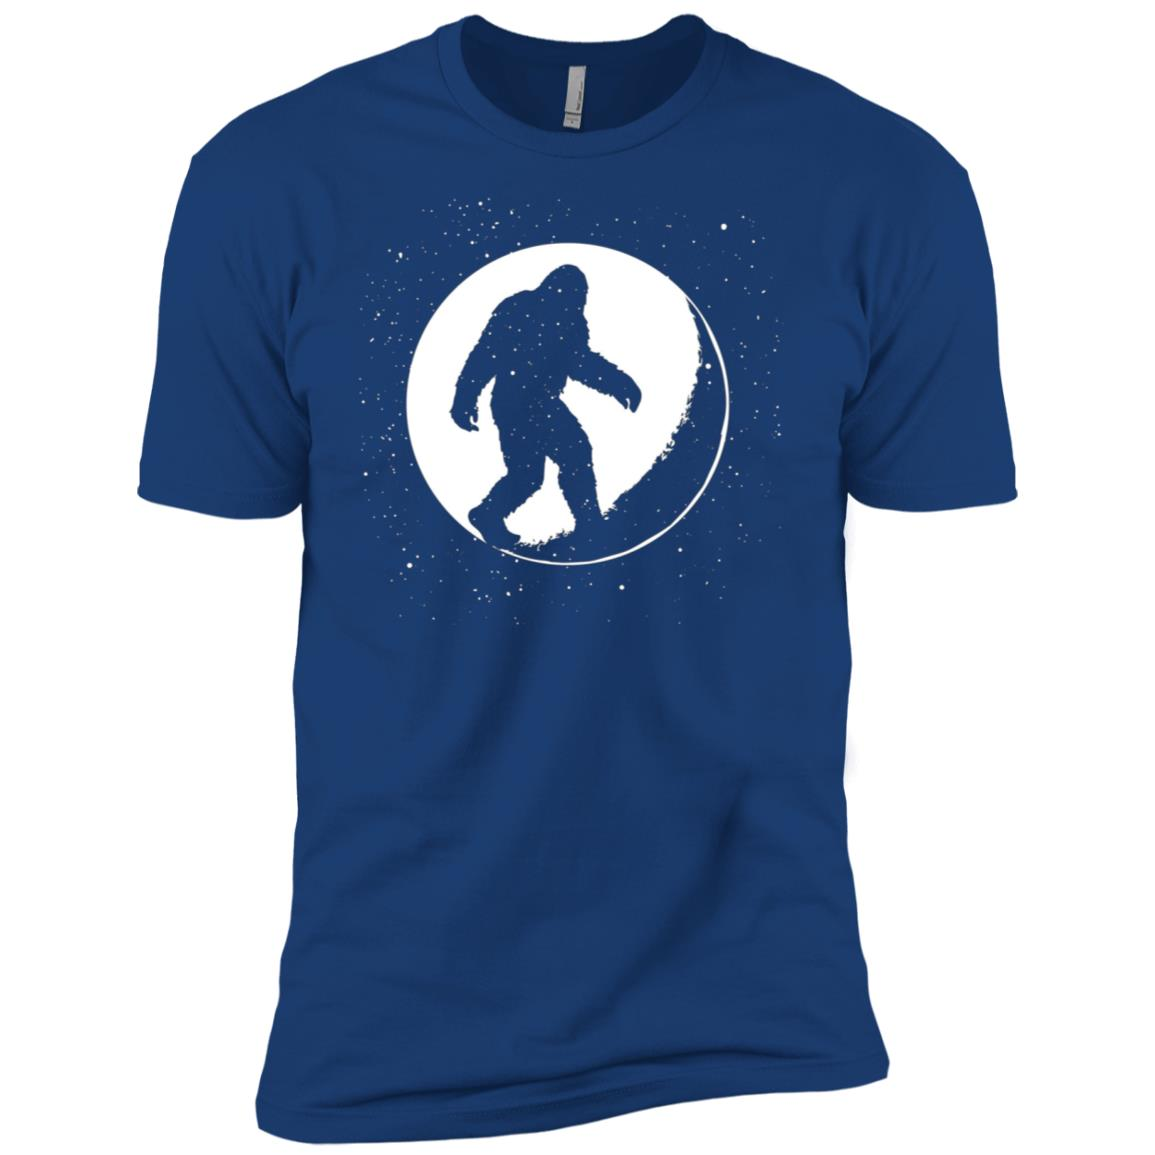 Bigfoot Walking on the Moon with Stars Men Short Sleeve T-Shirt